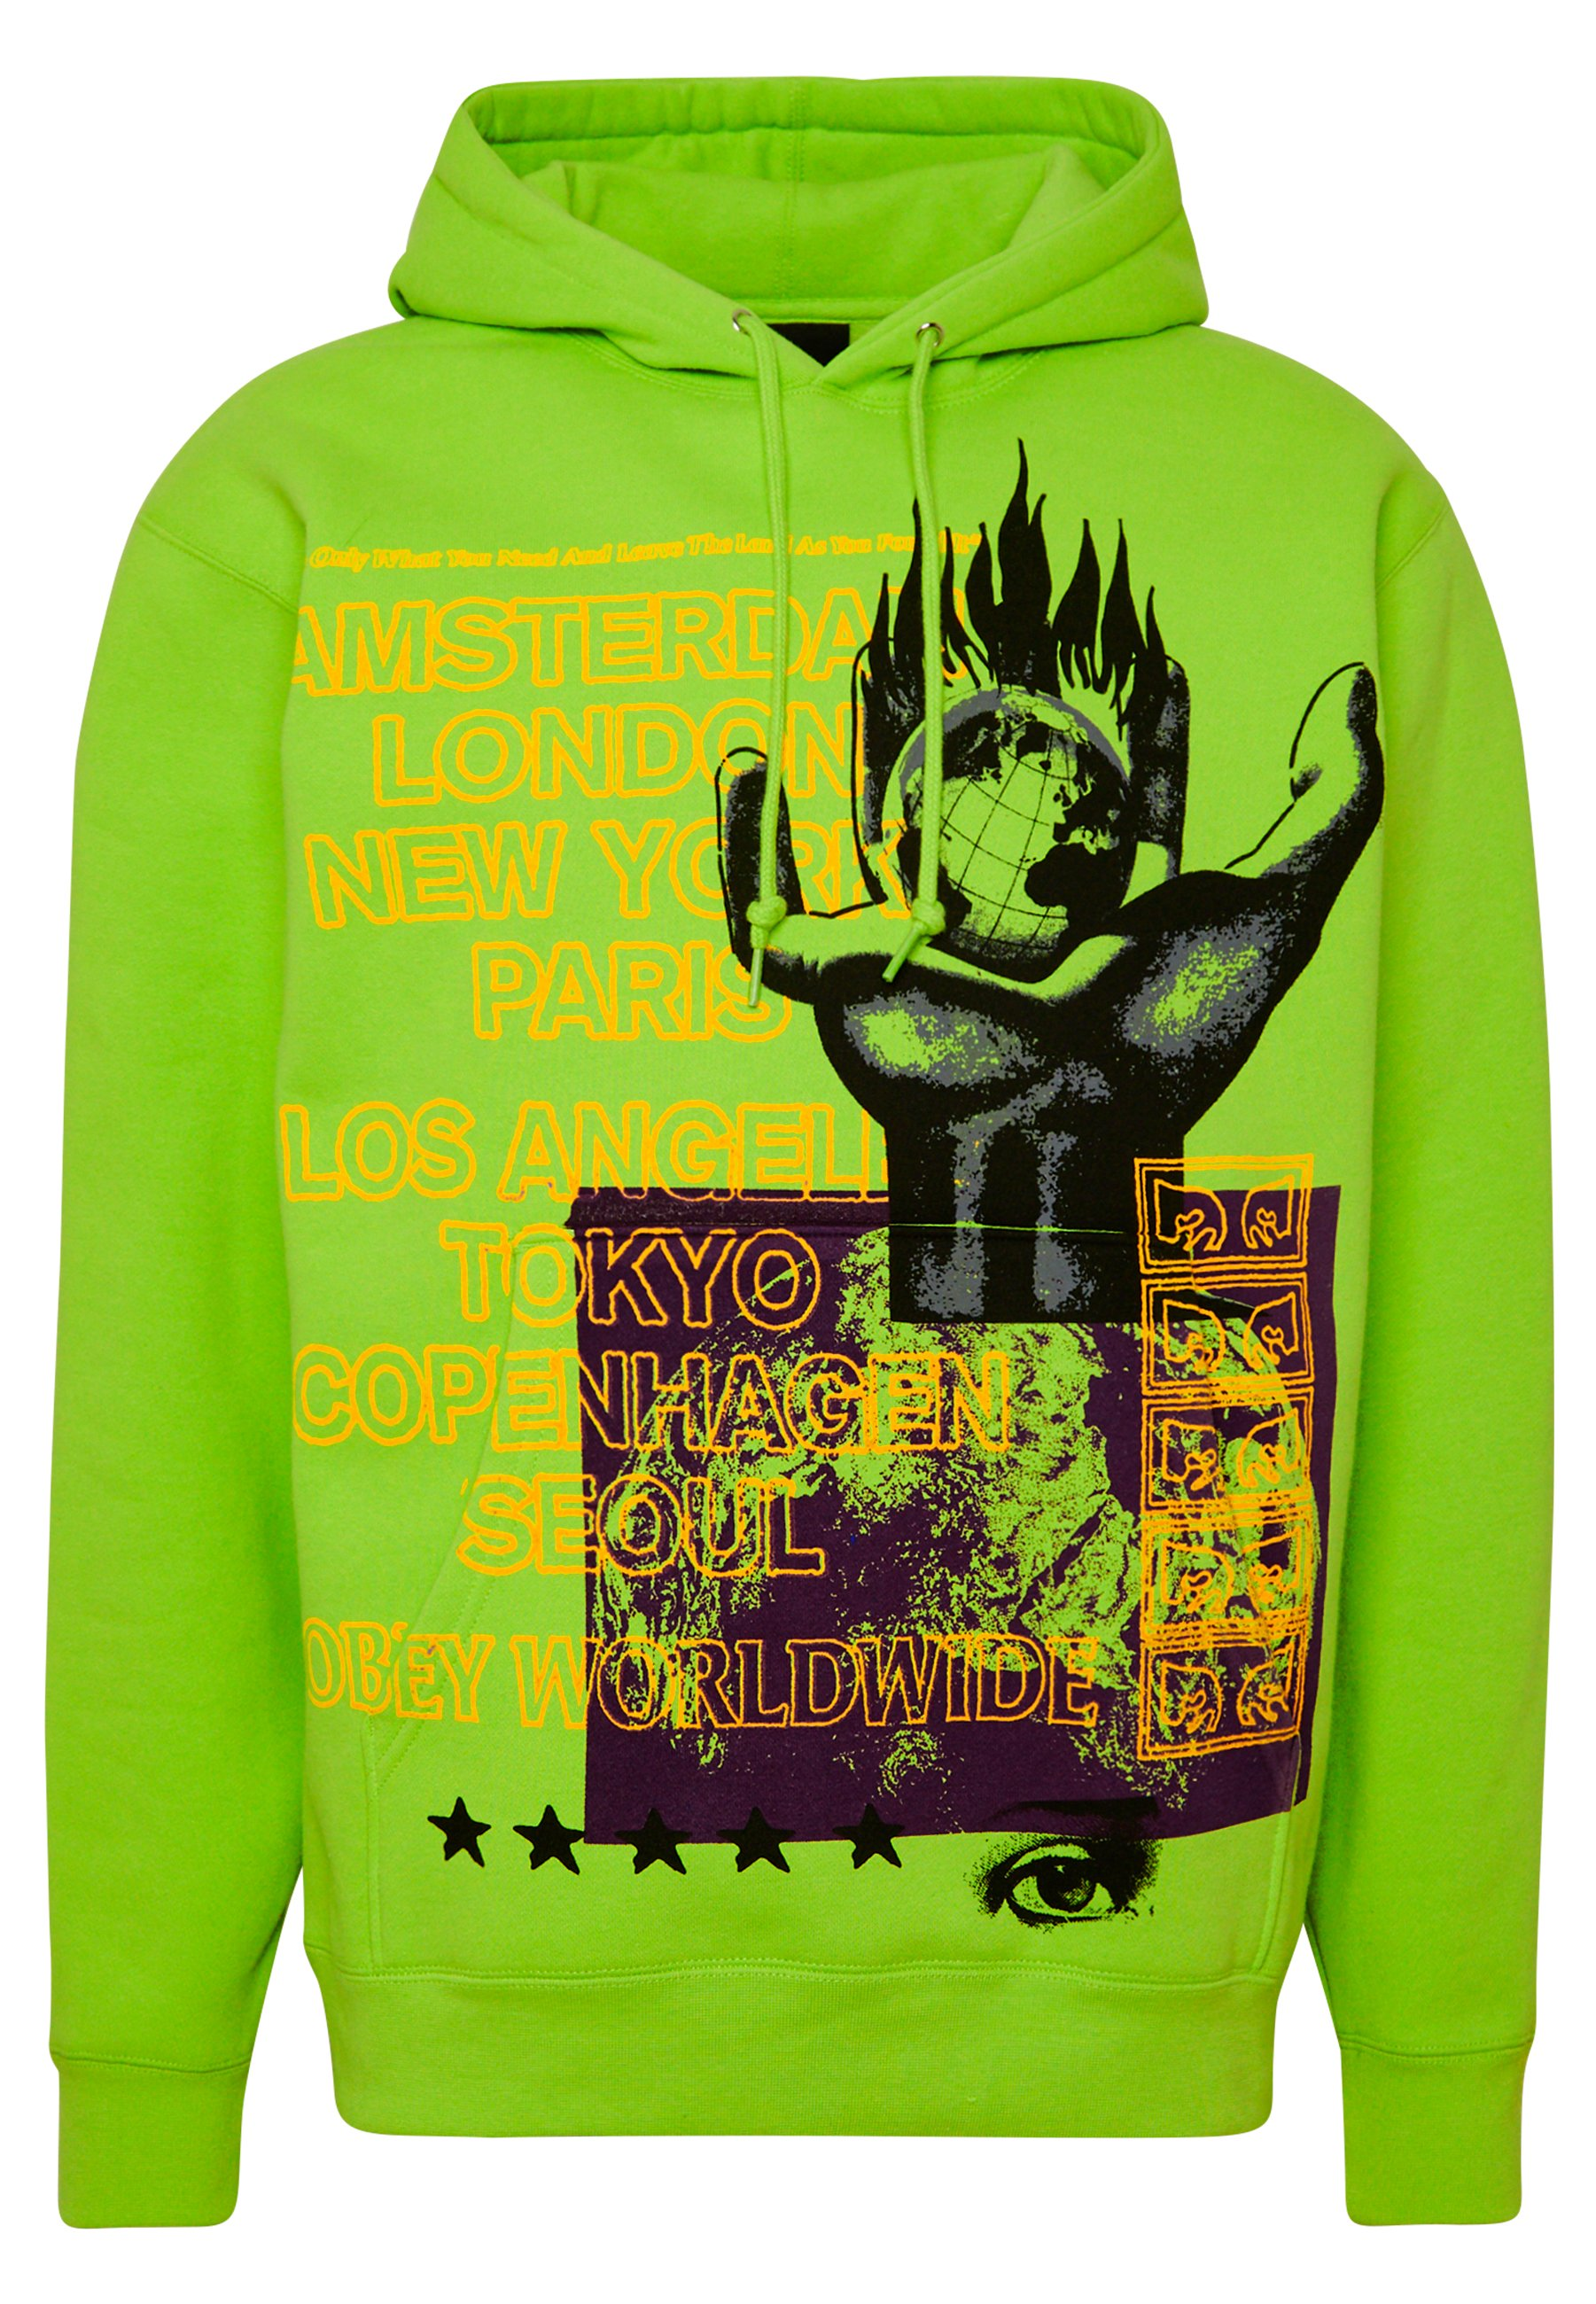 OUR PLANET Hoodie bright lime